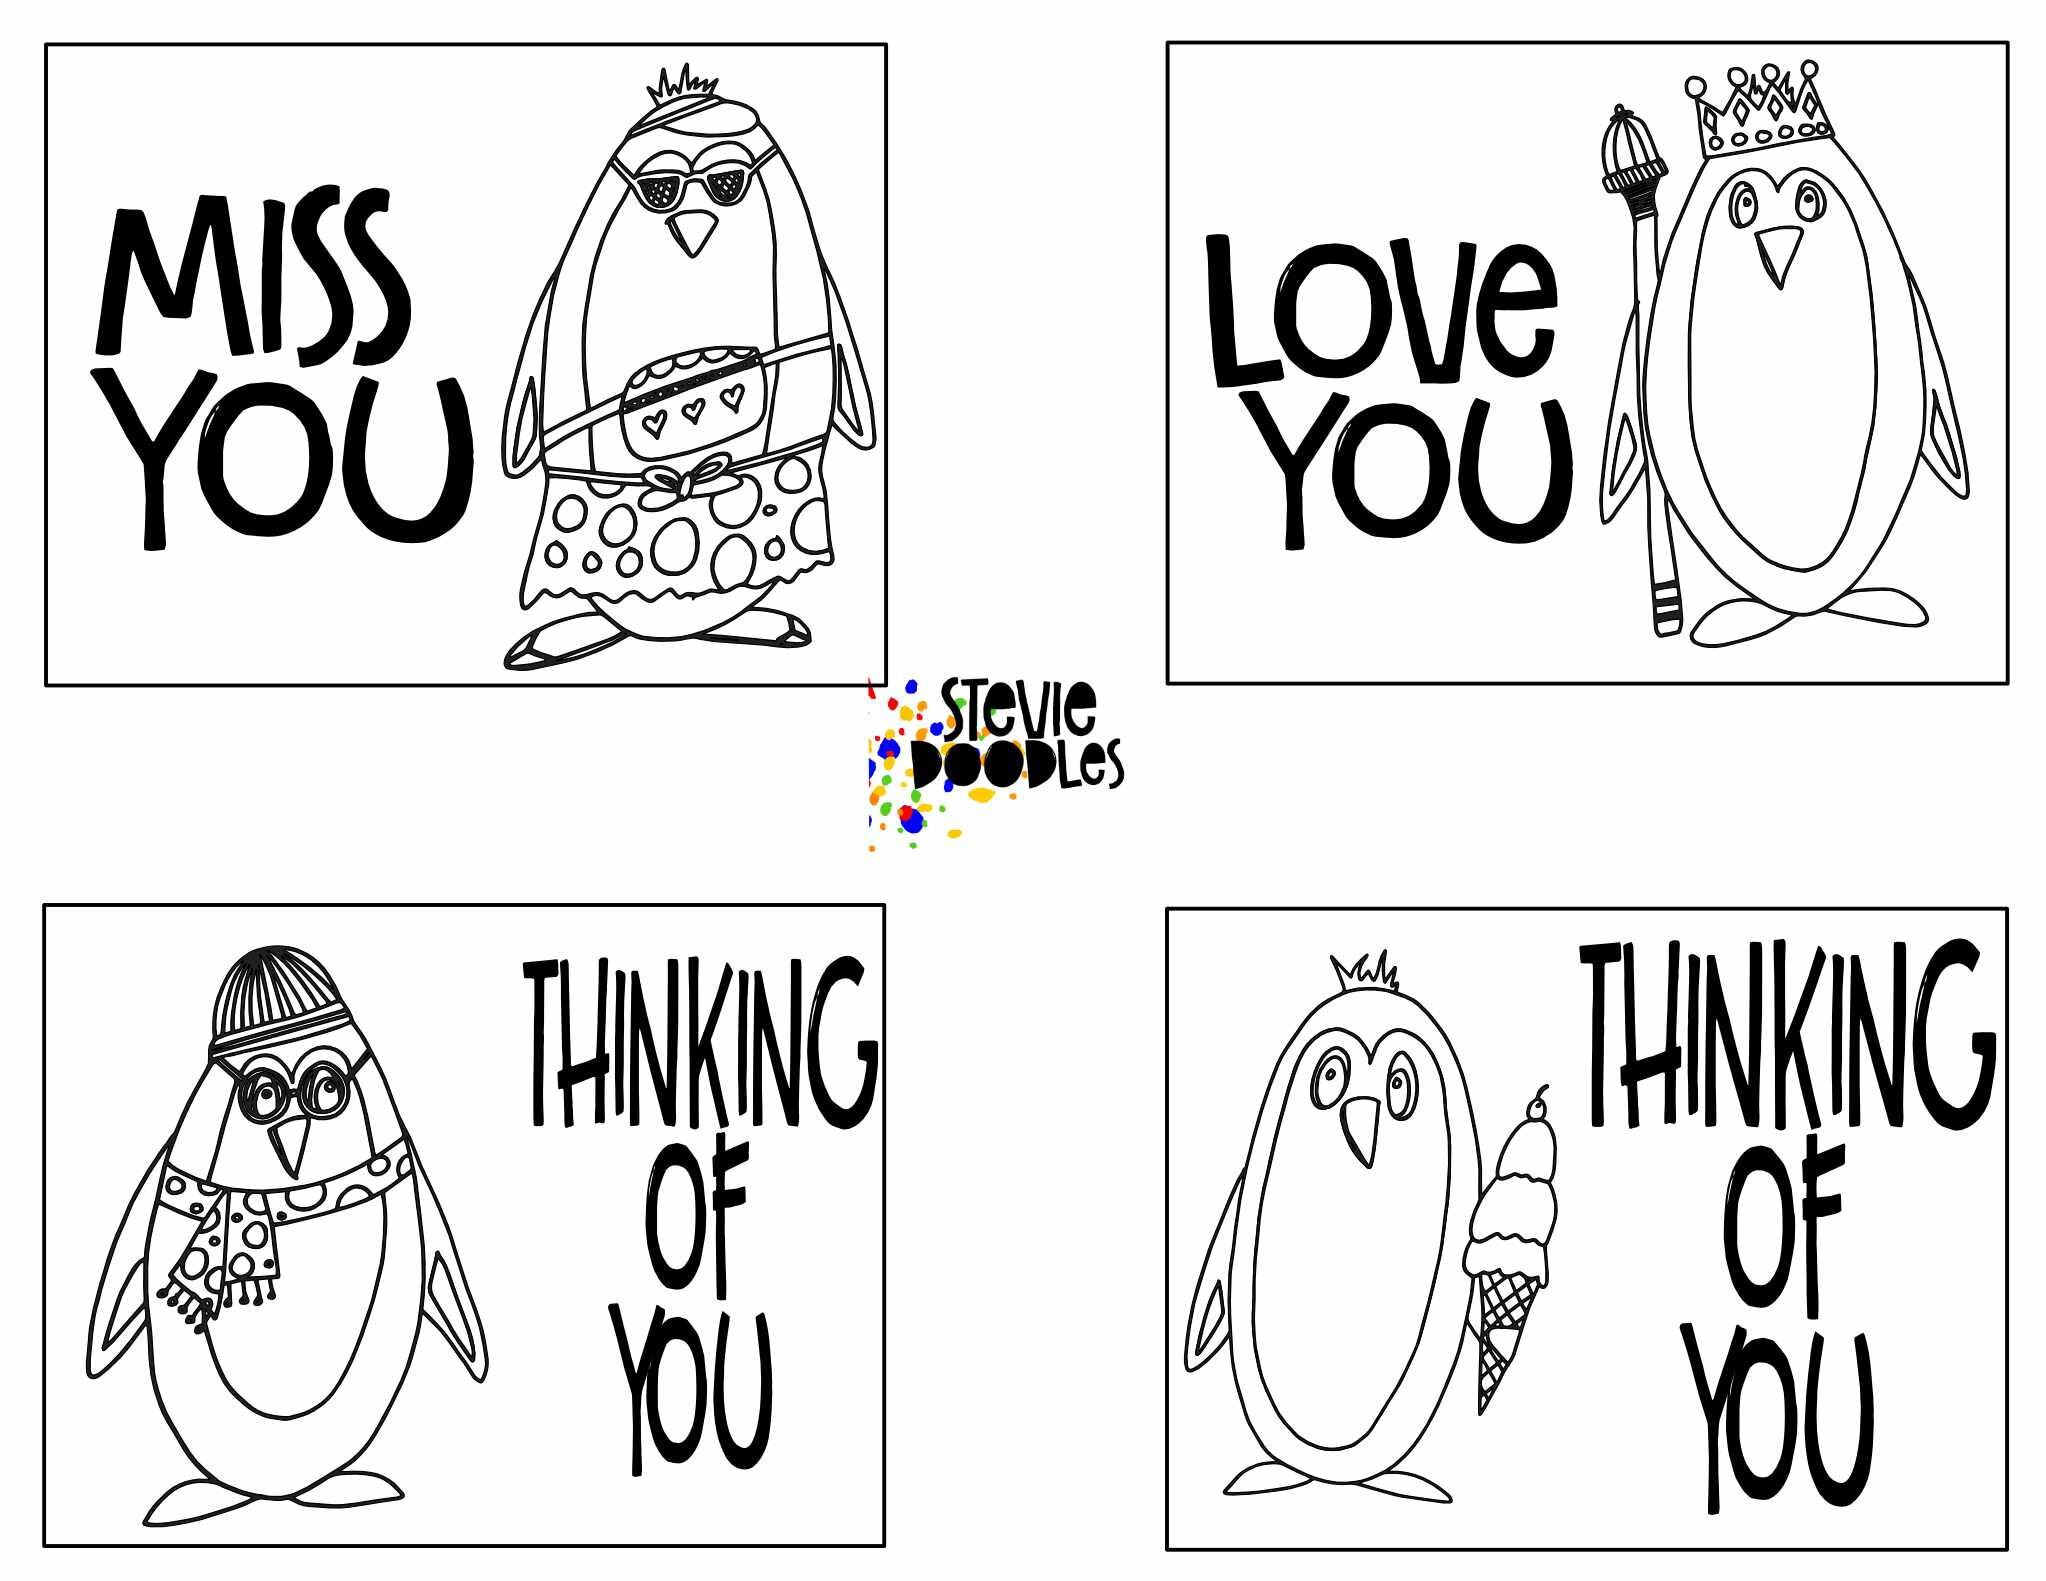 Free Thinking Of You Coloring Cards 28 Cards 7 Pages Printable Colorable Stevie Doodles